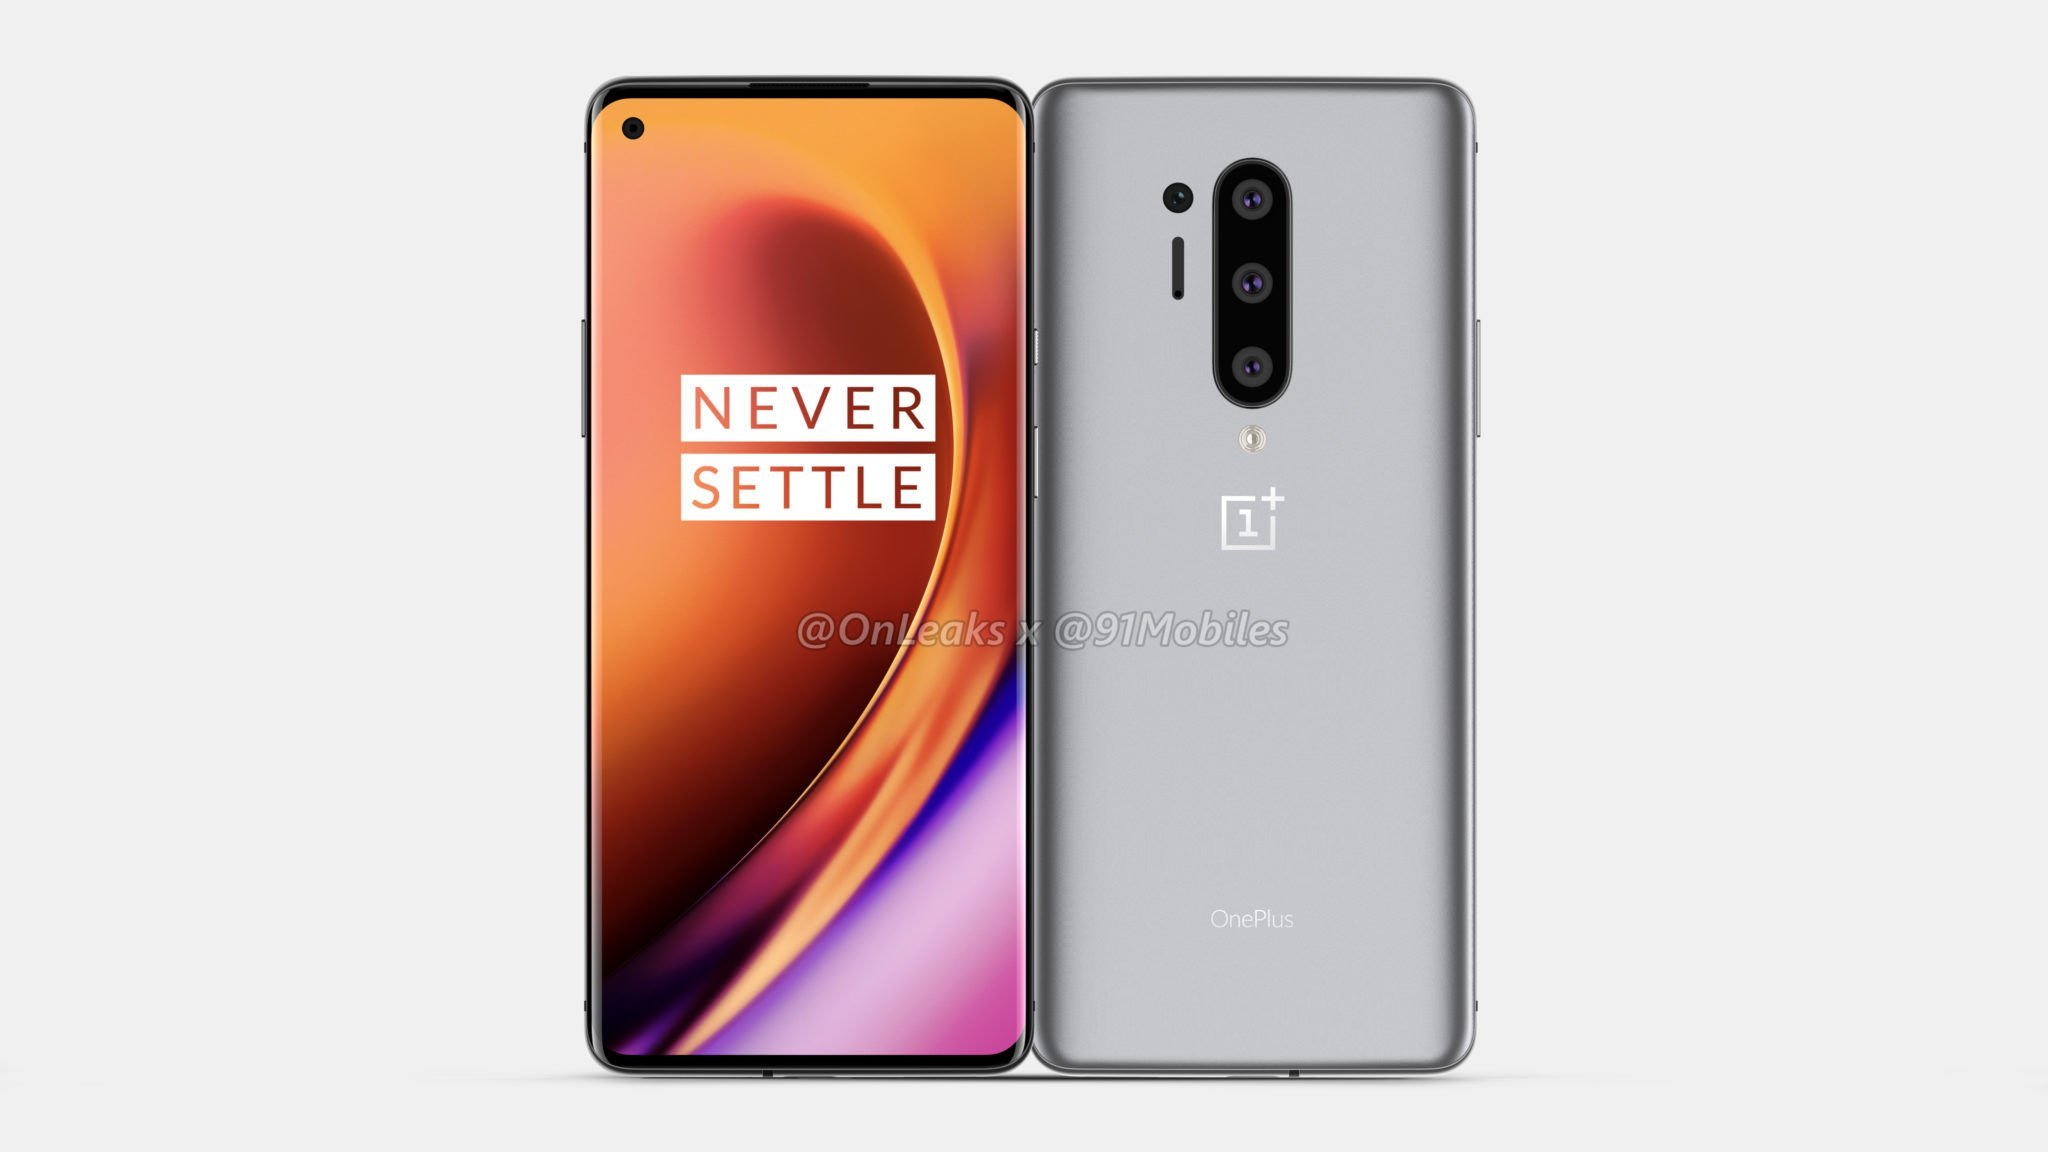 OnePlus 8 Pro : une charge sans fil de 30 W et le support 5G se dessinent encore plus